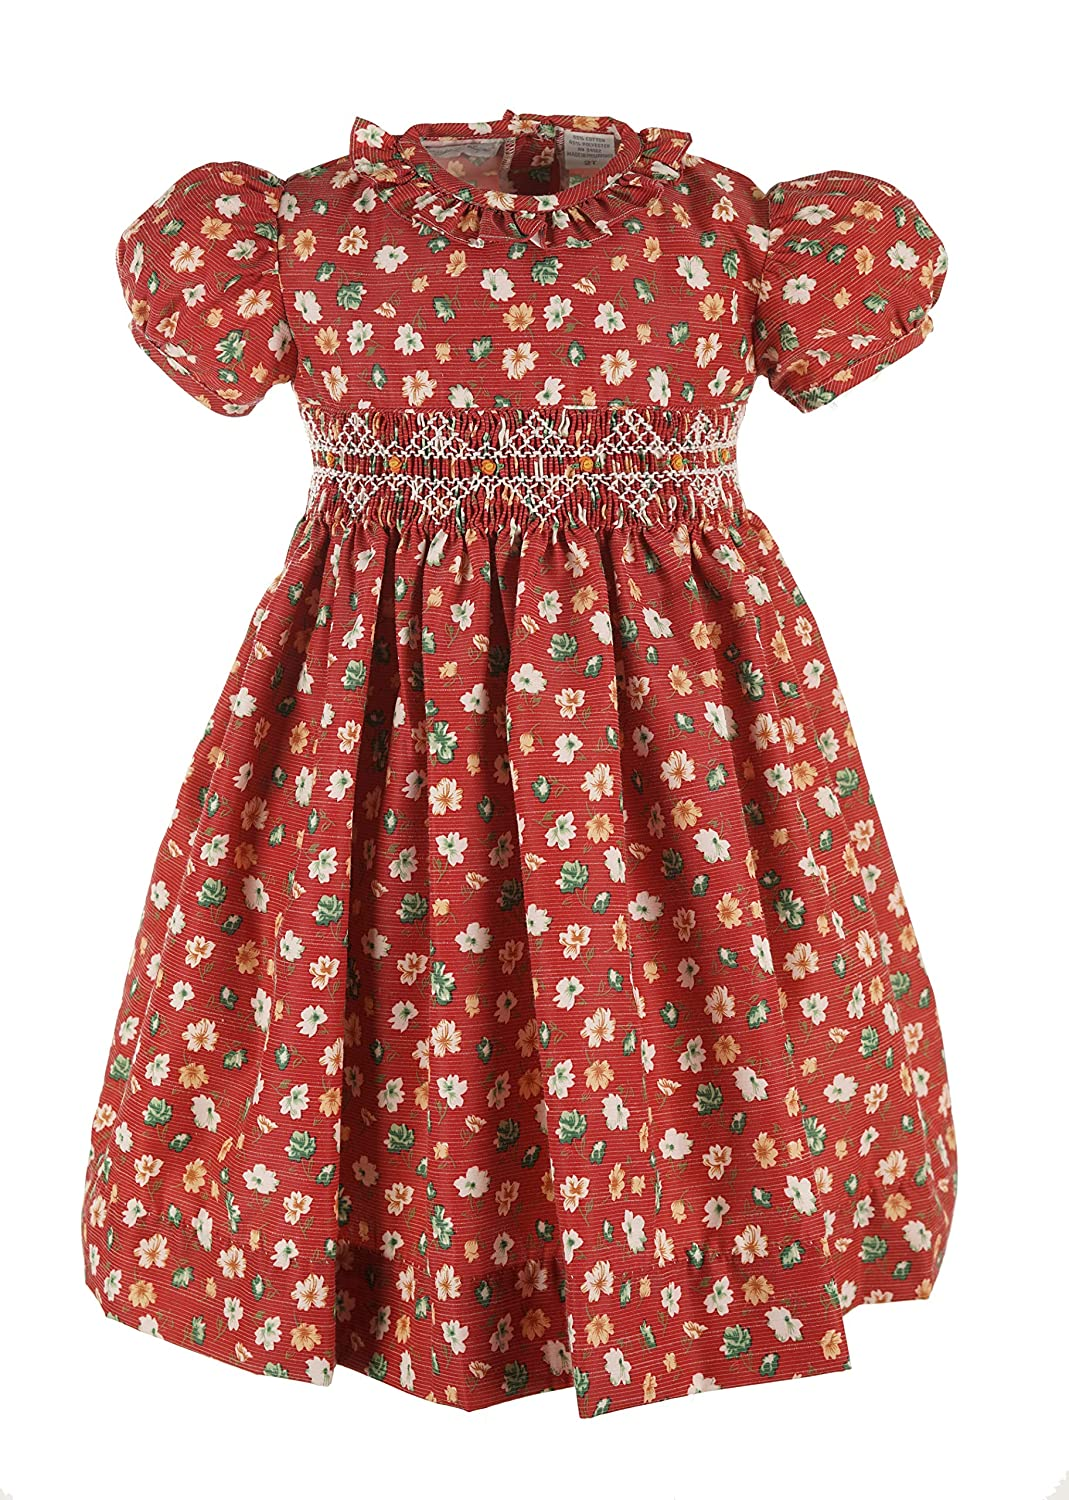 Victorian Kids Costumes & Shoes- Girls, Boys, Baby, Toddler Carriage Boutique Girls Red Waisted Yoke Dress - Floral Winter Short Sleeve $56.00 AT vintagedancer.com